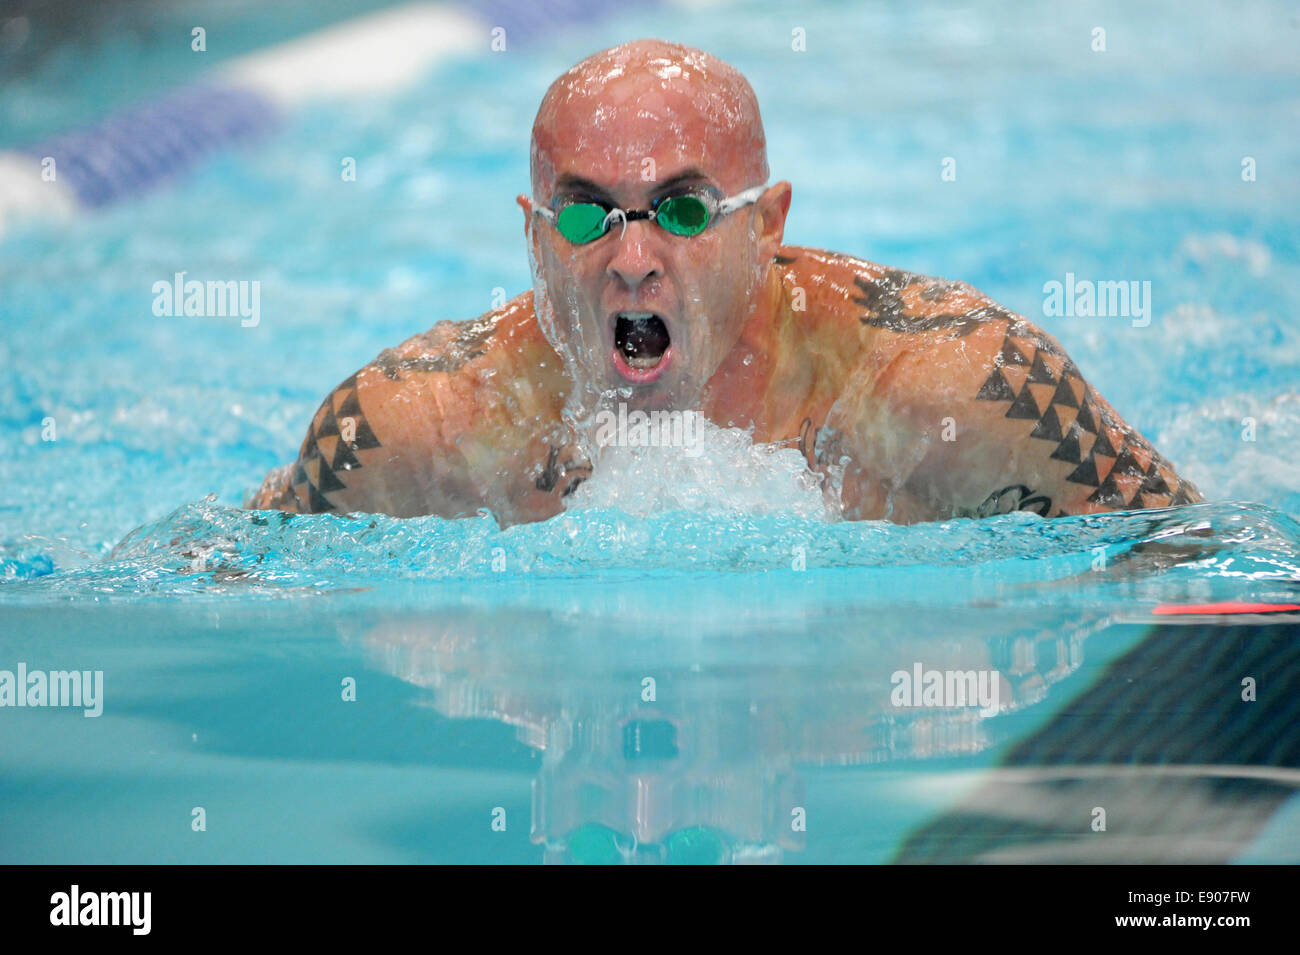 U.S. Navy Hospital Corpsman 1st Class Jamie Sclater, with the Marine team, swims to win the gold in his division - Stock Image